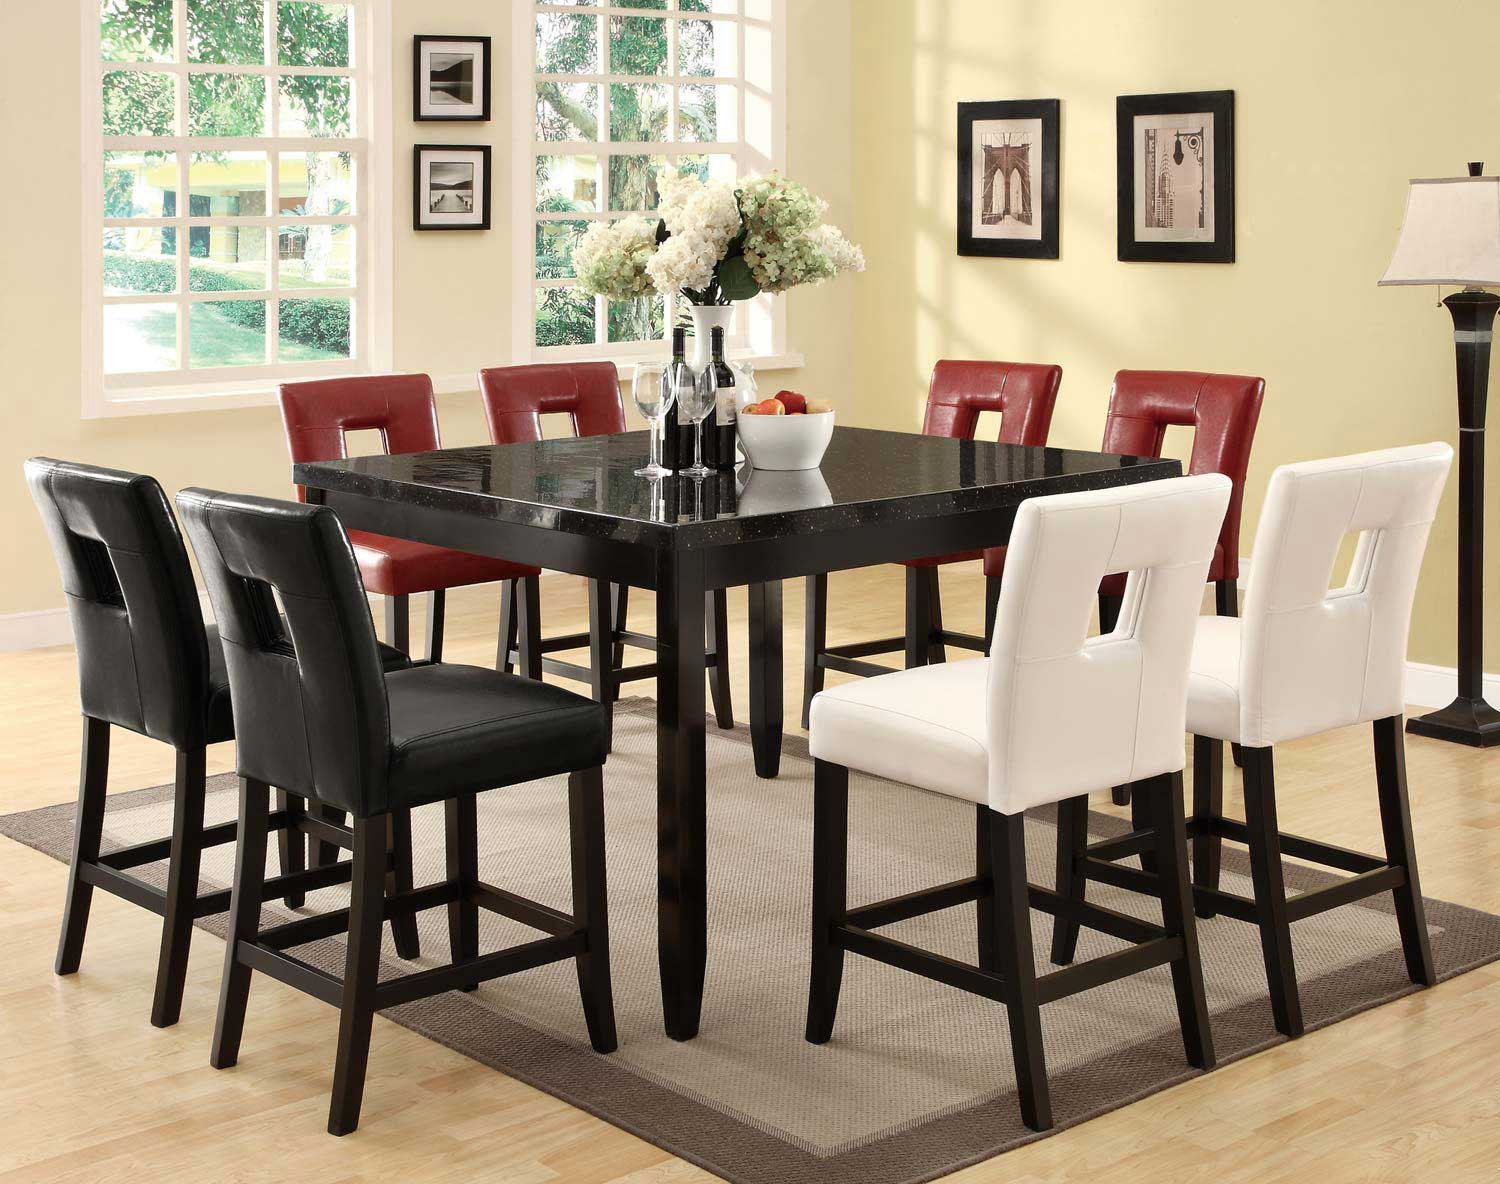 Coaster Newbridge Counter Height Dining Set - Cappuccino